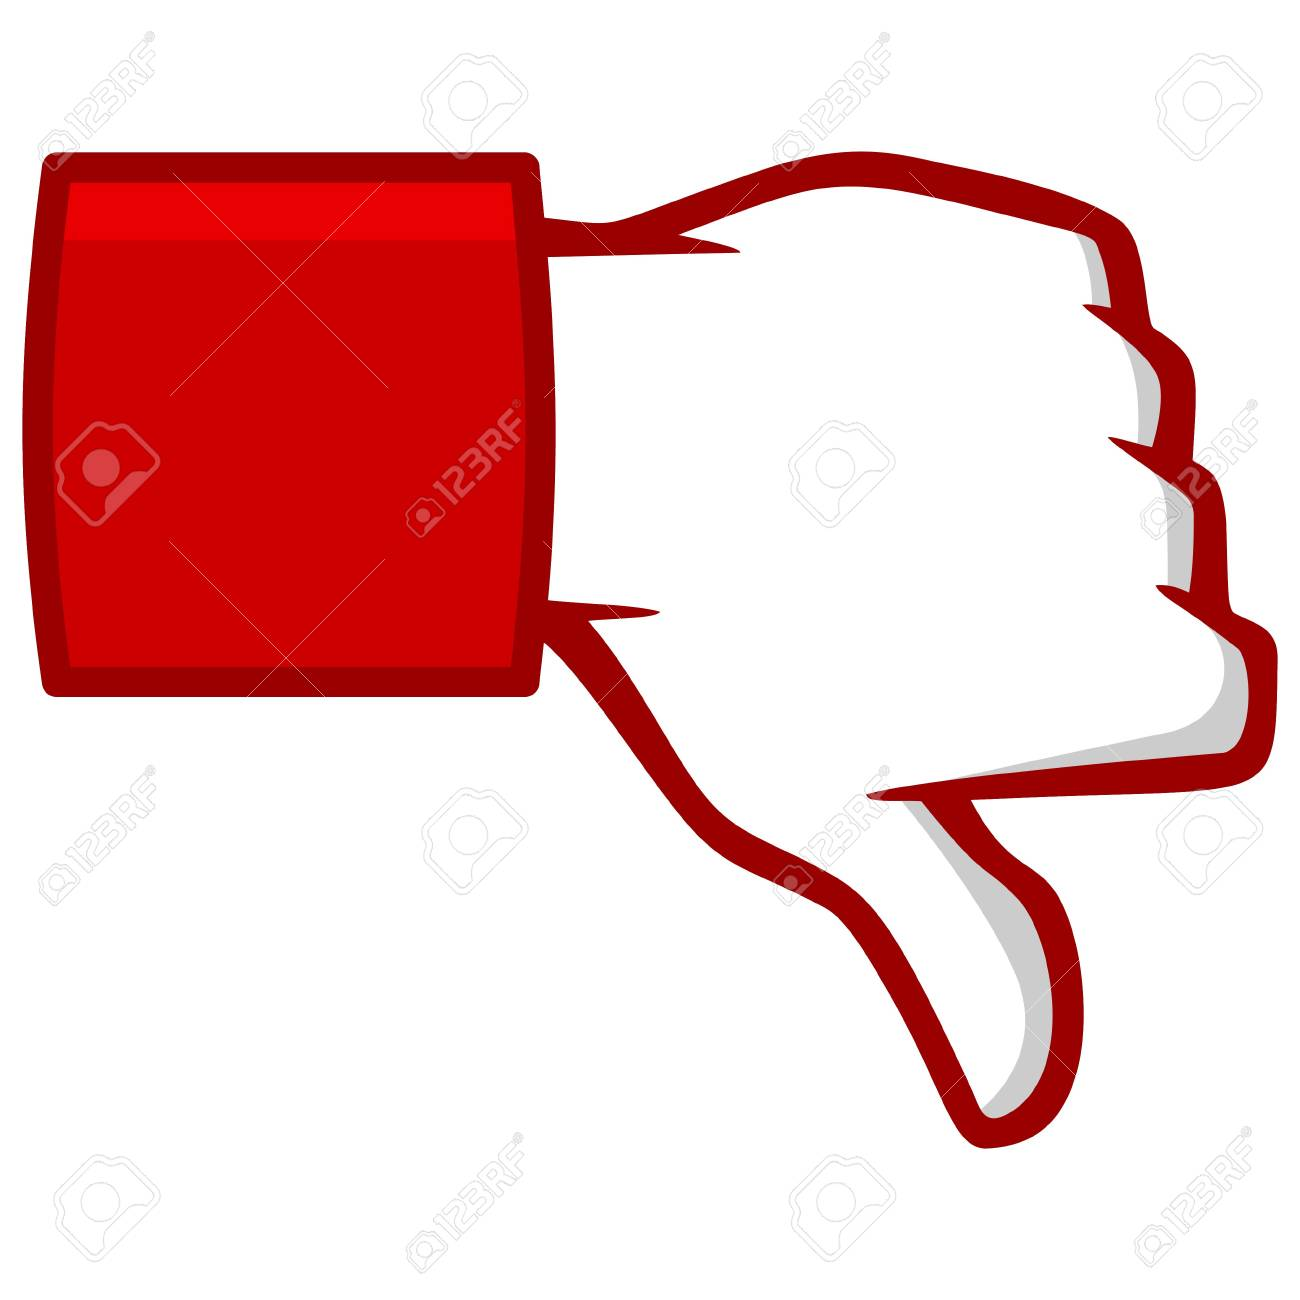 Thumbs Down Social Media Icon